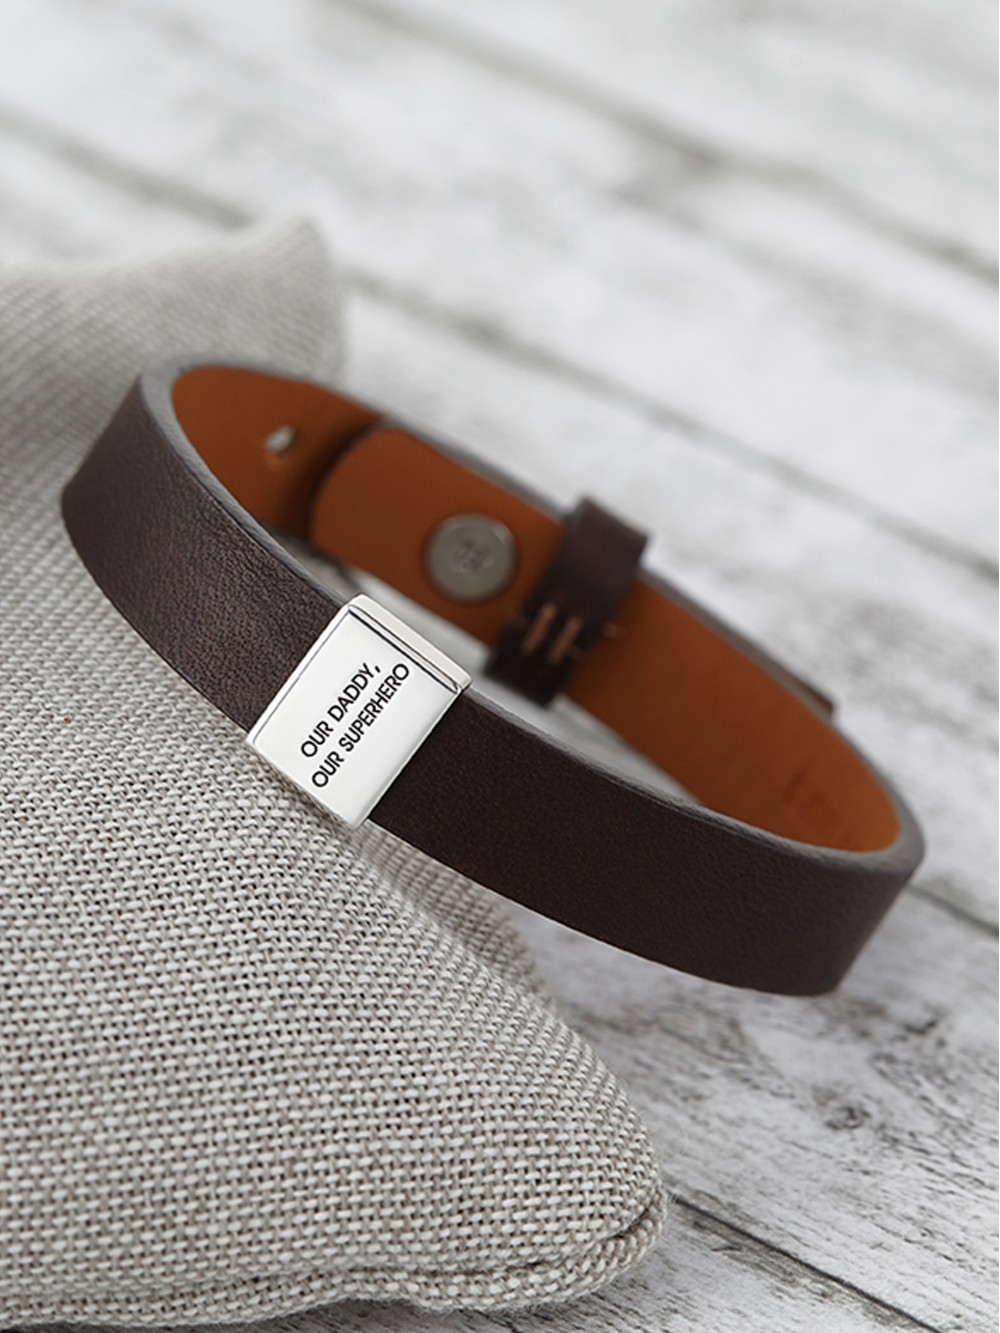 Men's Leather Bracelet - Engraved Dad Bracelet